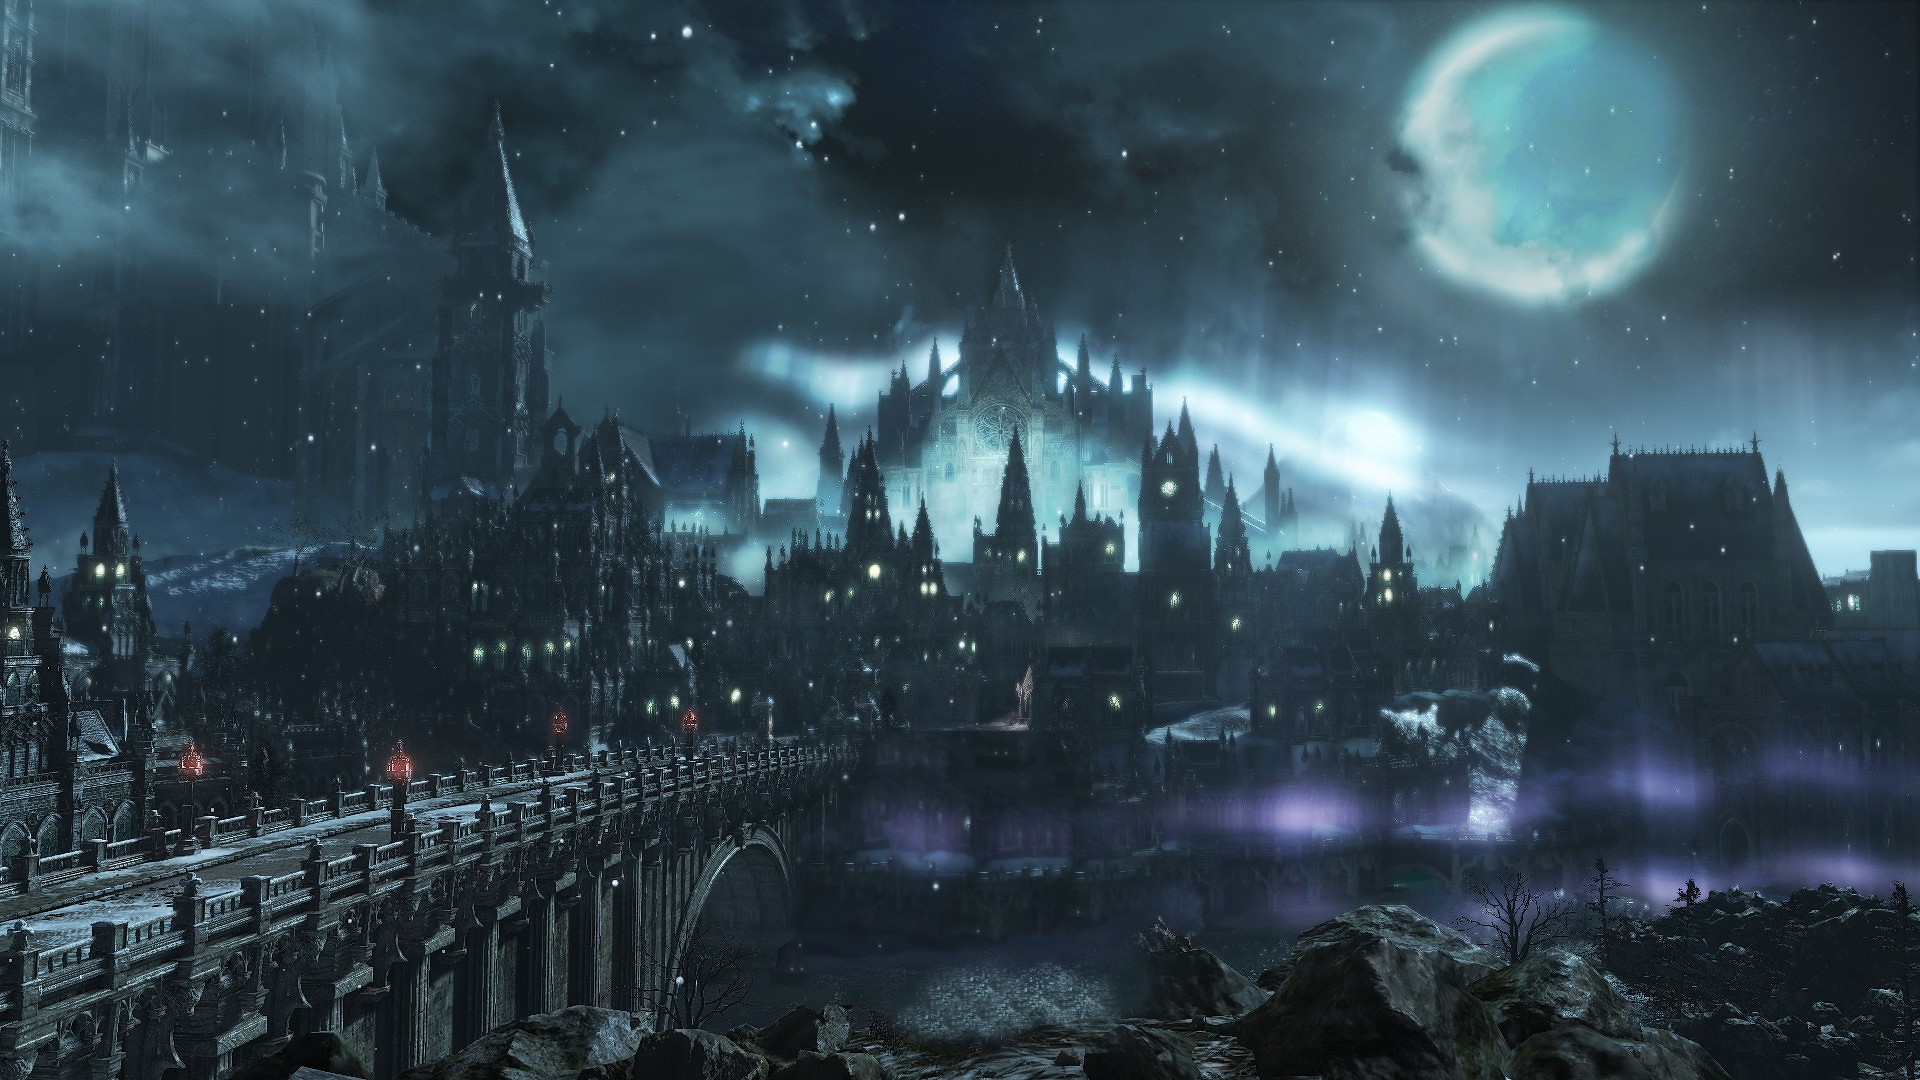 Dark Souls 3 Hd Wallpaper: 44+ Dark Souls 3 Wallpapers ·① Download Free Full HD